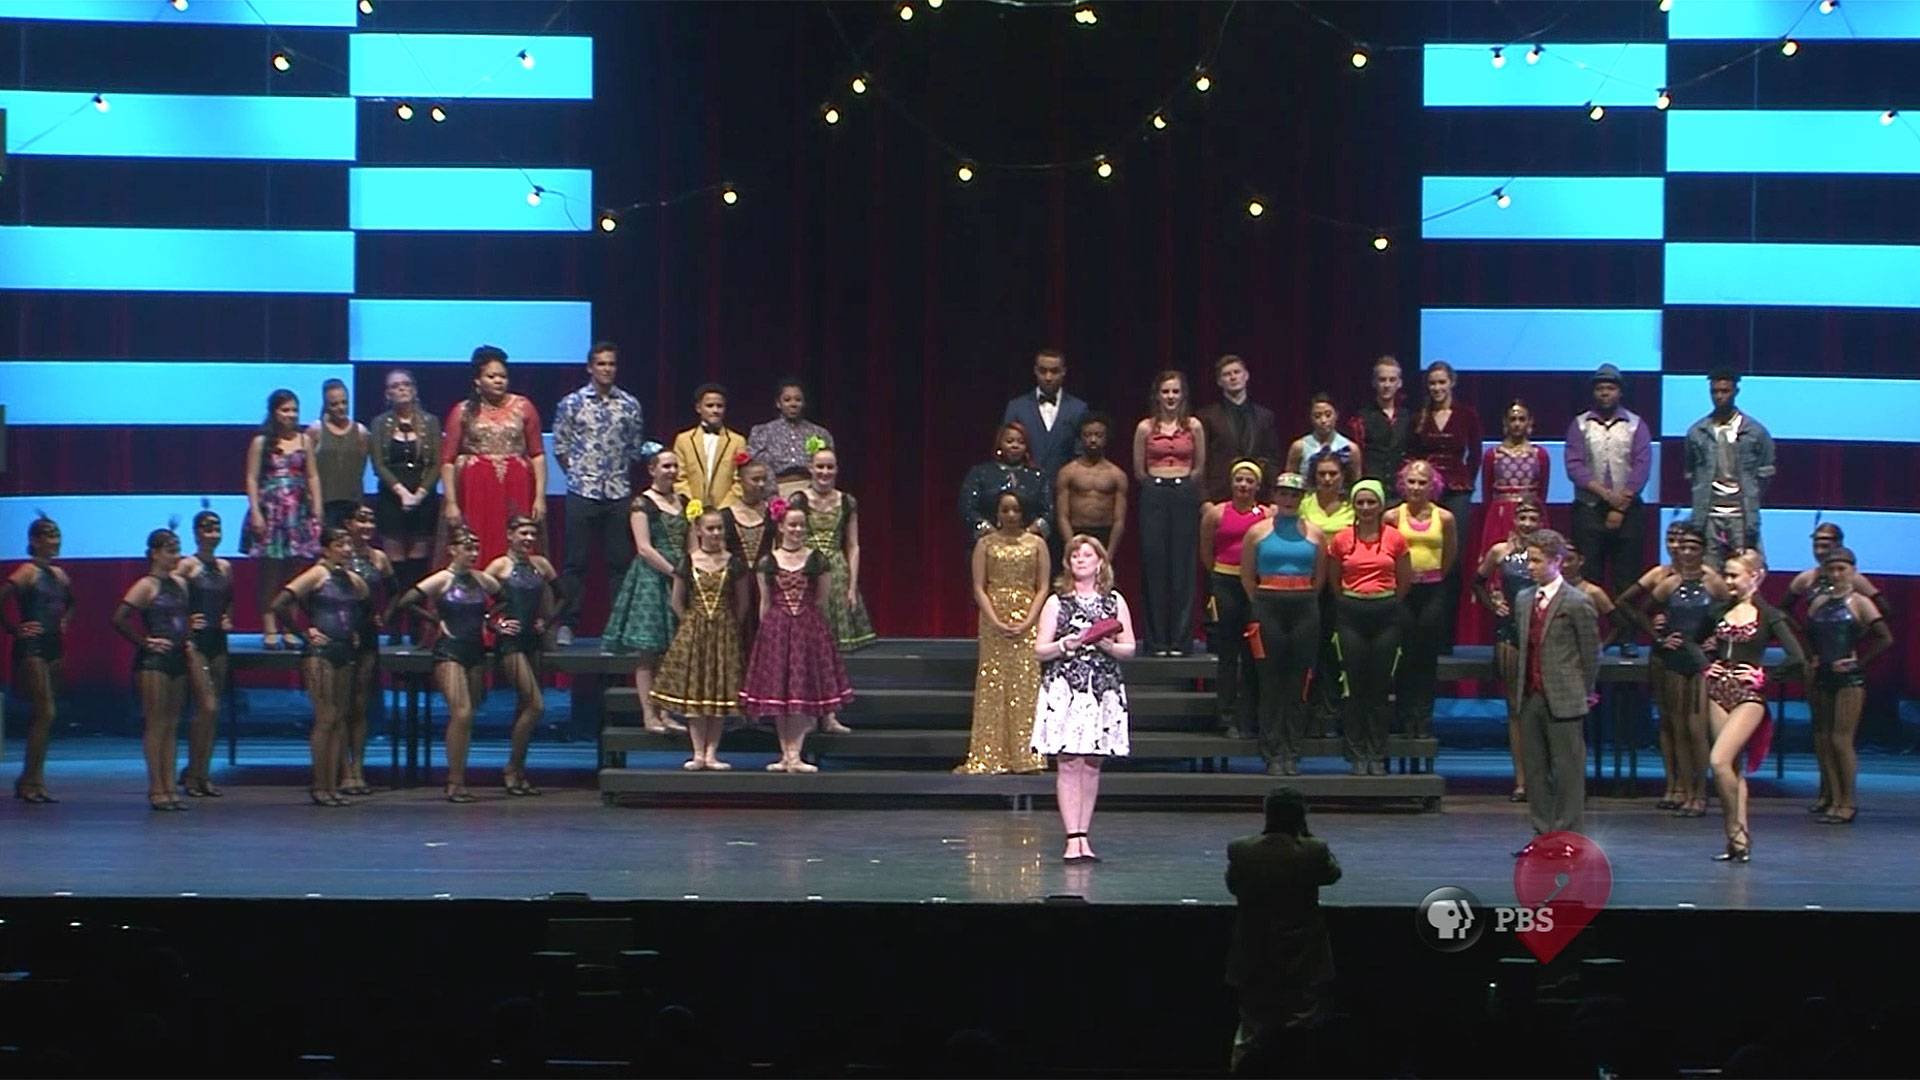 St. Louis Teen Talent Competition 2017